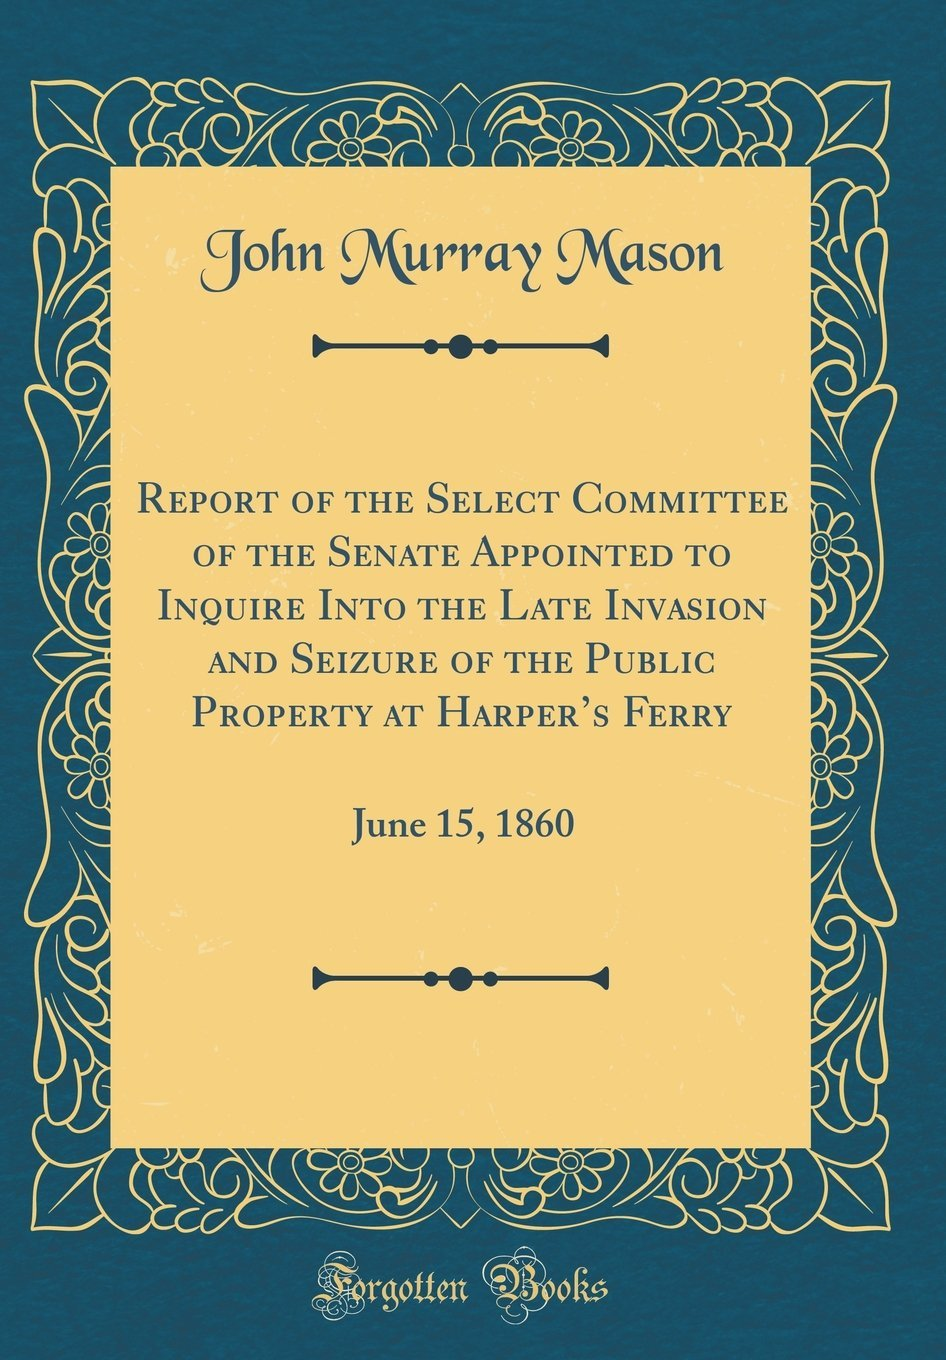 Report of the Select Committee of the Senate Appointed to Inquire Into the Late Invasion and Seizure of the Public Property at Harper's Ferry: June 15, 1860 (Classic Reprint) ebook